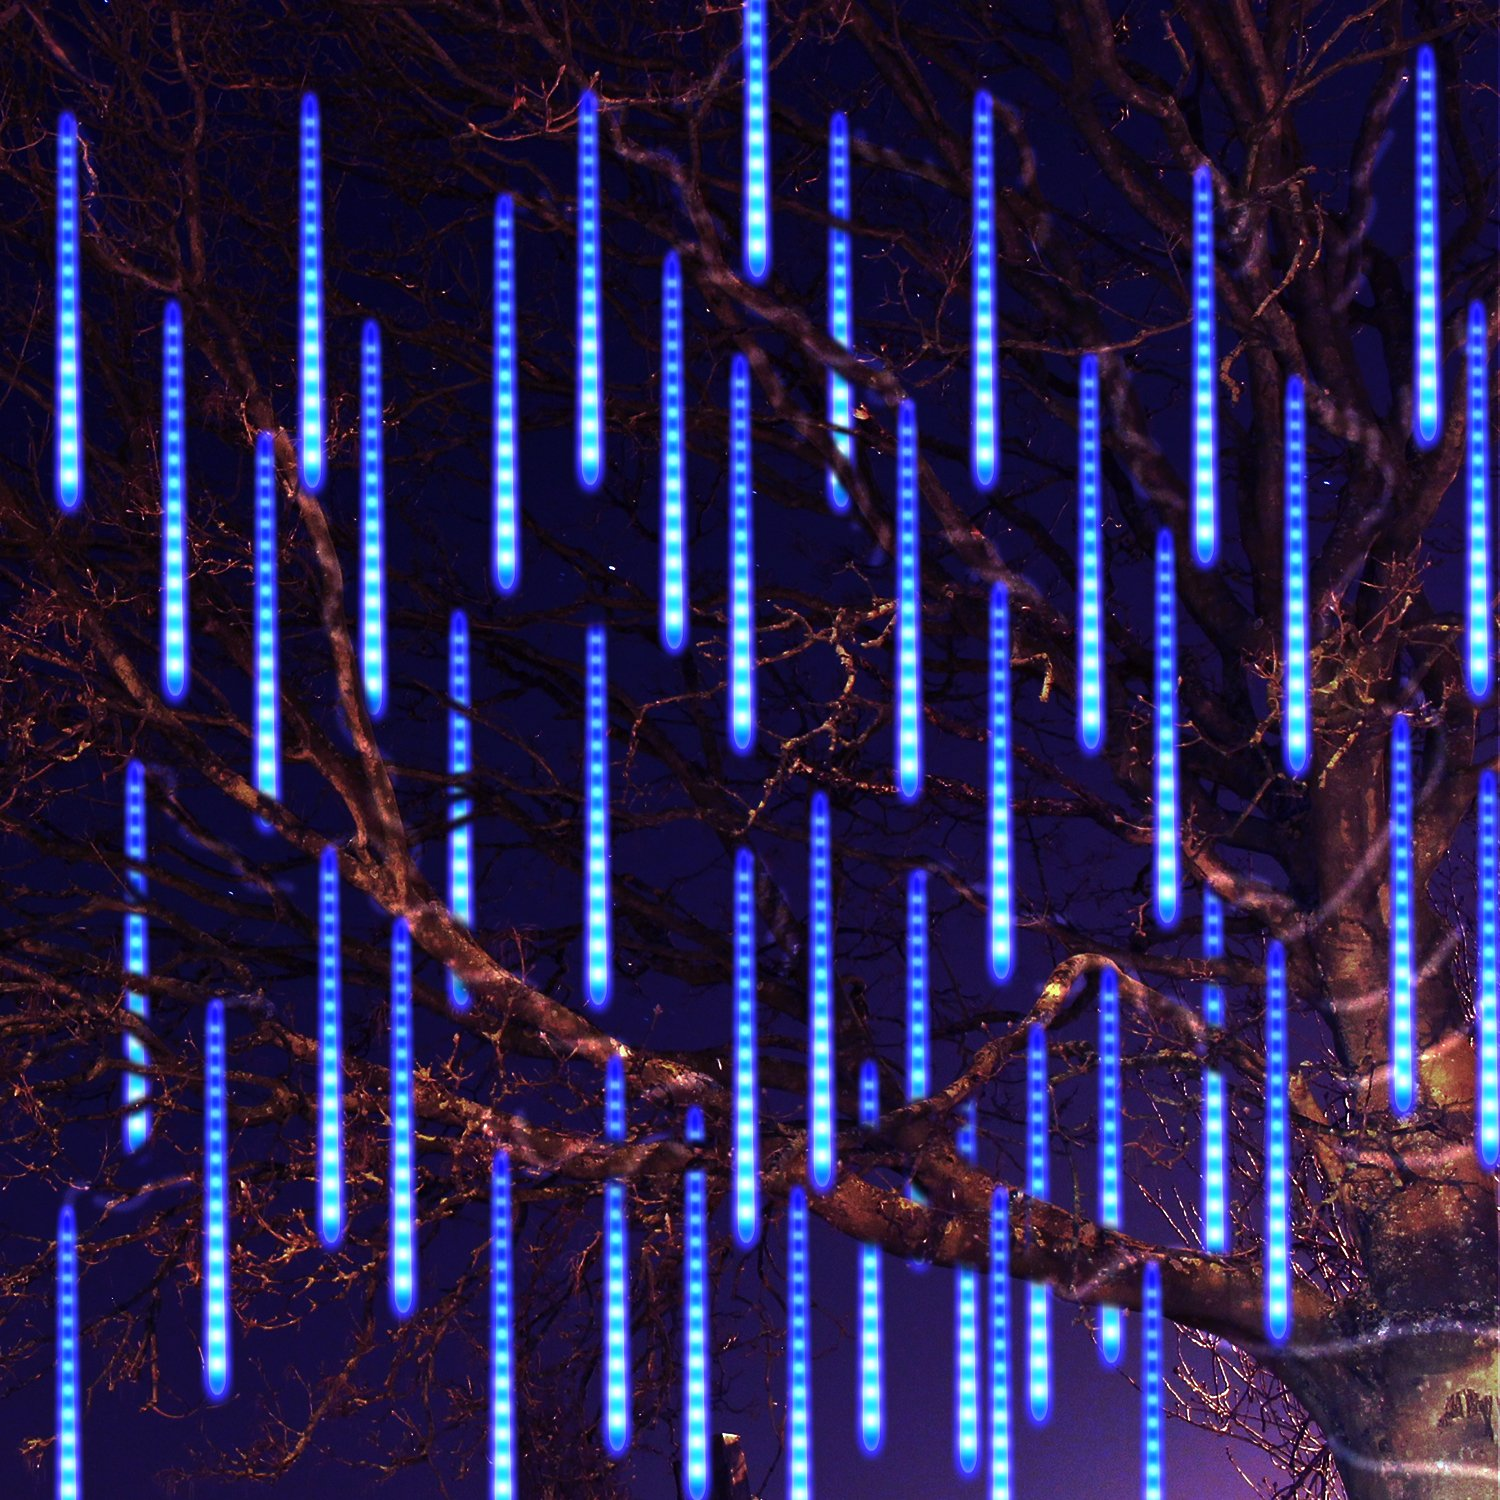 Meteor Shower Rain Lights Waterproof String for Wedding Party Christmas Xmas Decoration Tree Party Garden String Light Outdoor 10FT 8 Tube 144 led Lamp beads (Blue)